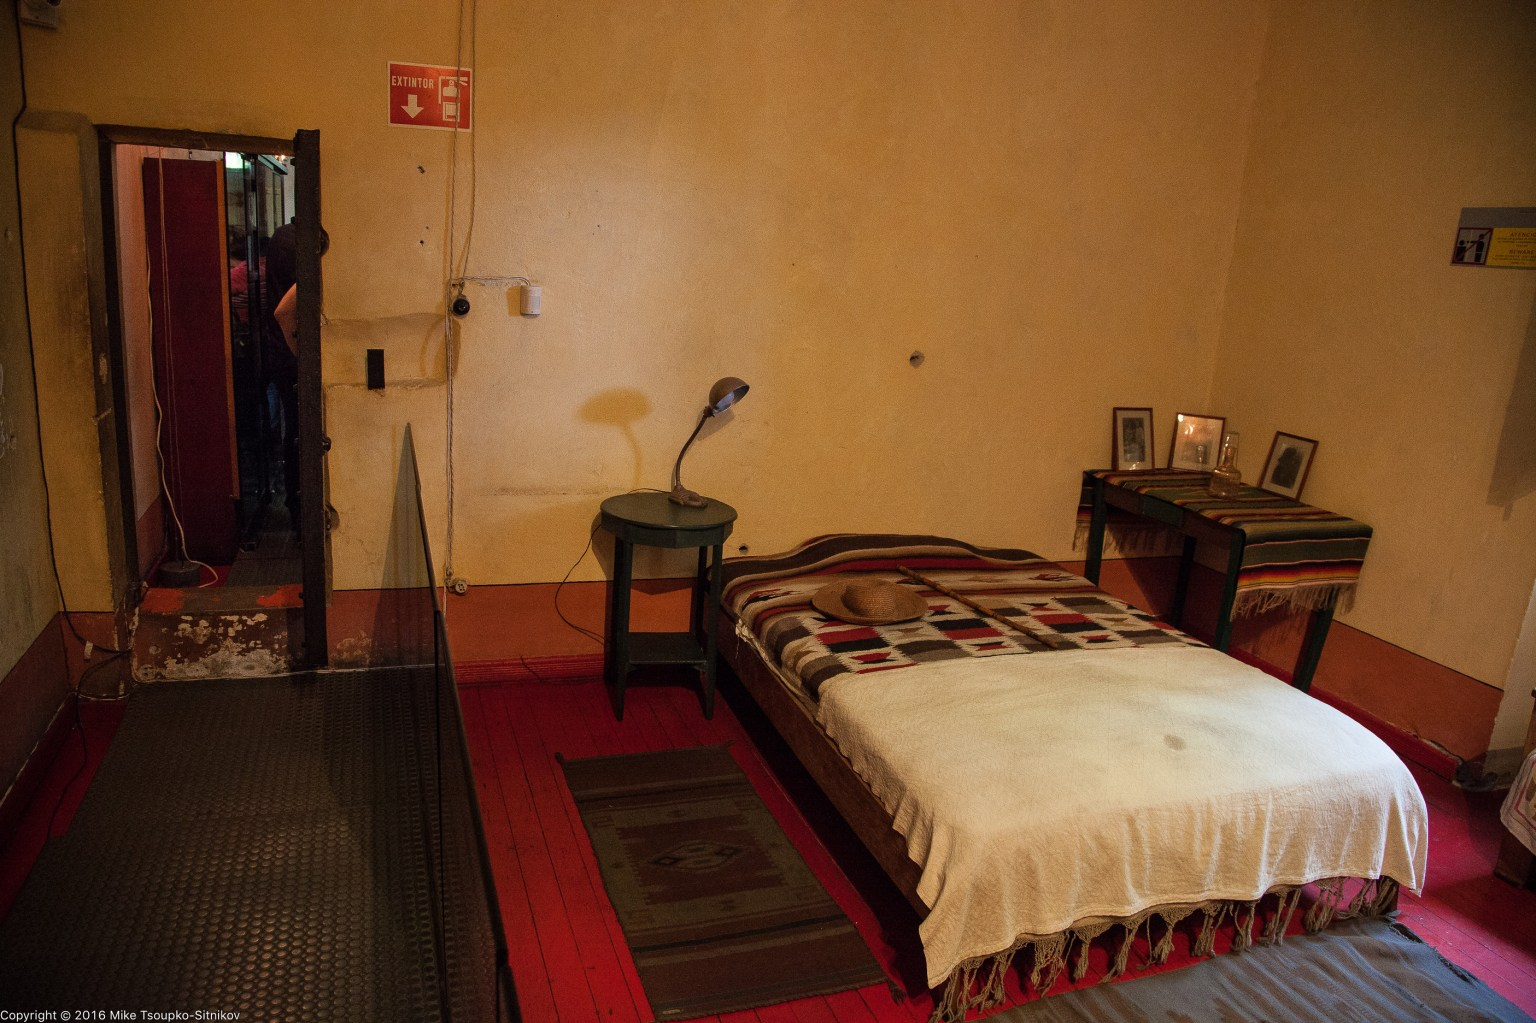 Trotsky house: the bedroom